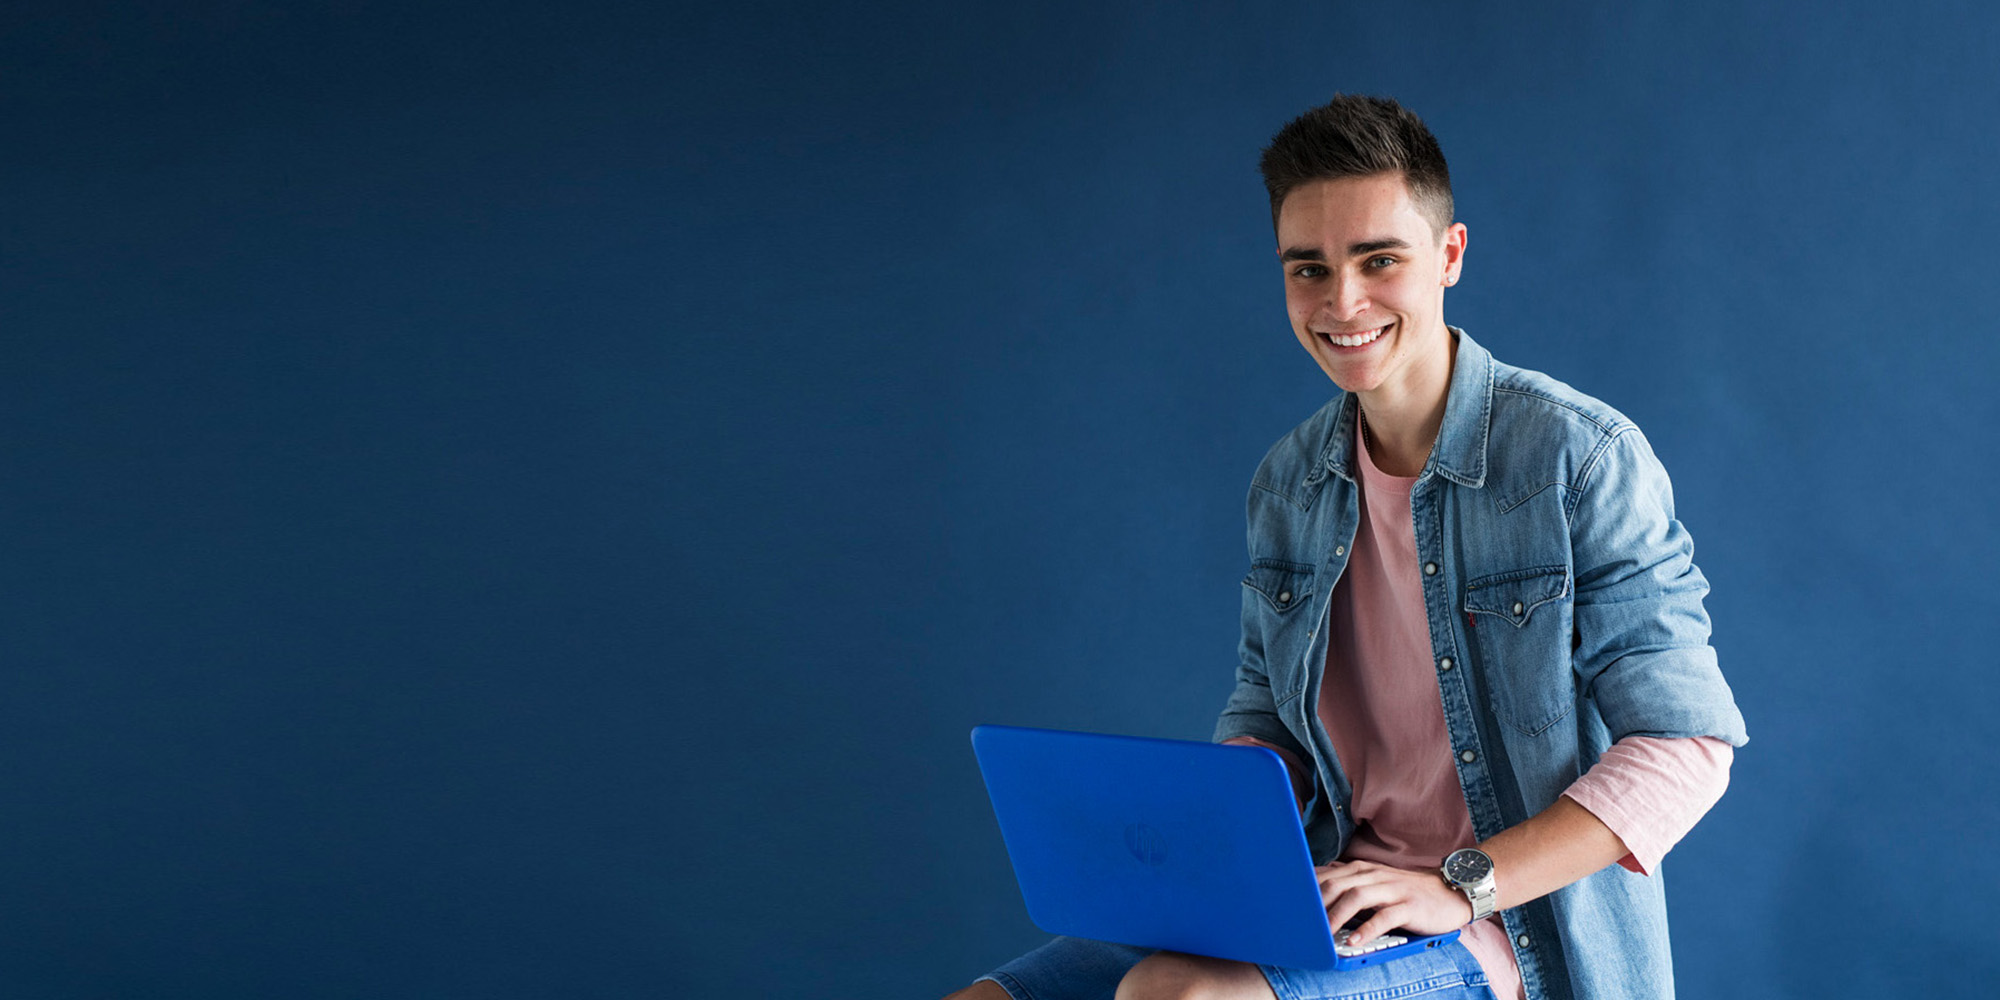 A young male sitting on a stool in front of a blue background, Holding a laptop